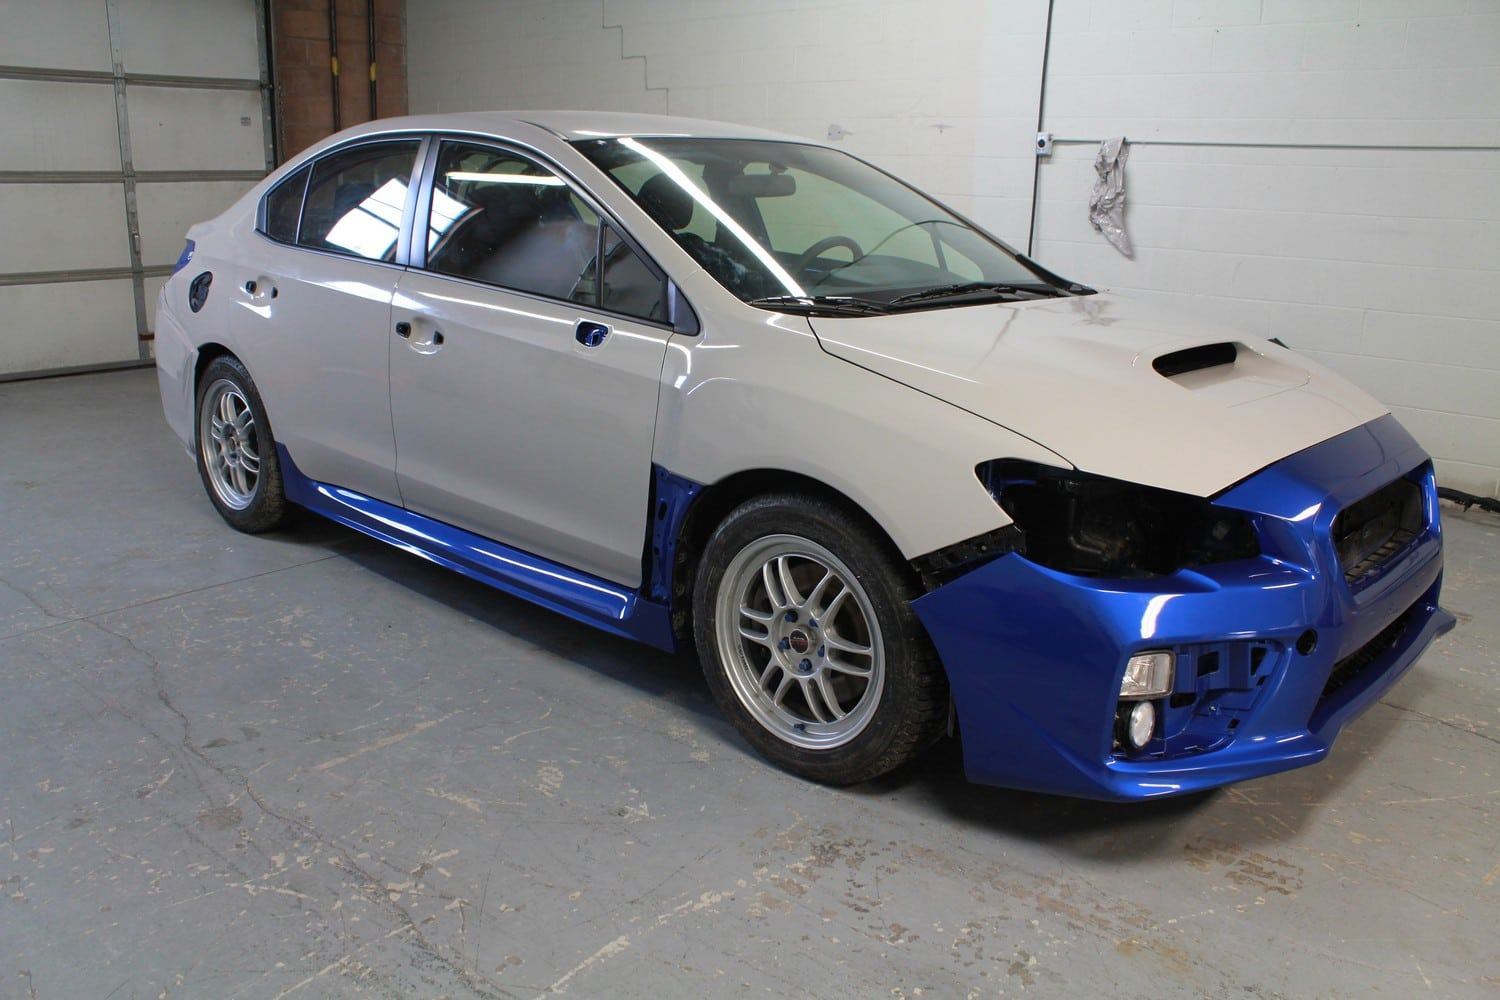 2015 Wrx Project Northstar Full Vehicle Vinyl Wrap